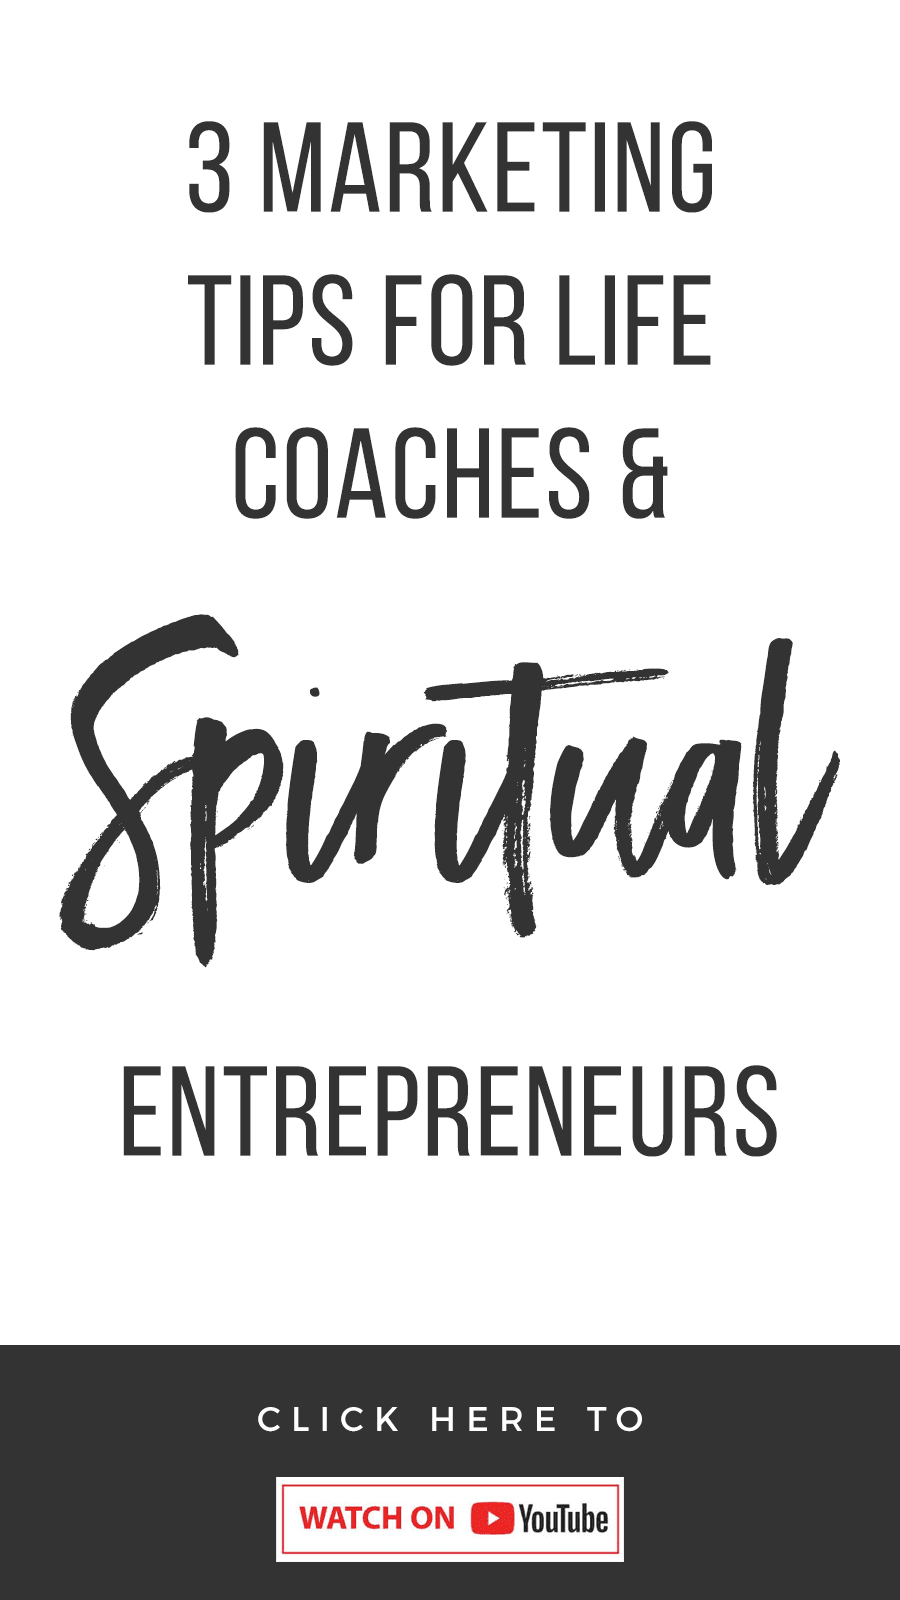 3 Marketing Tips For Life Coaches & Spiritual Entrepreneurs